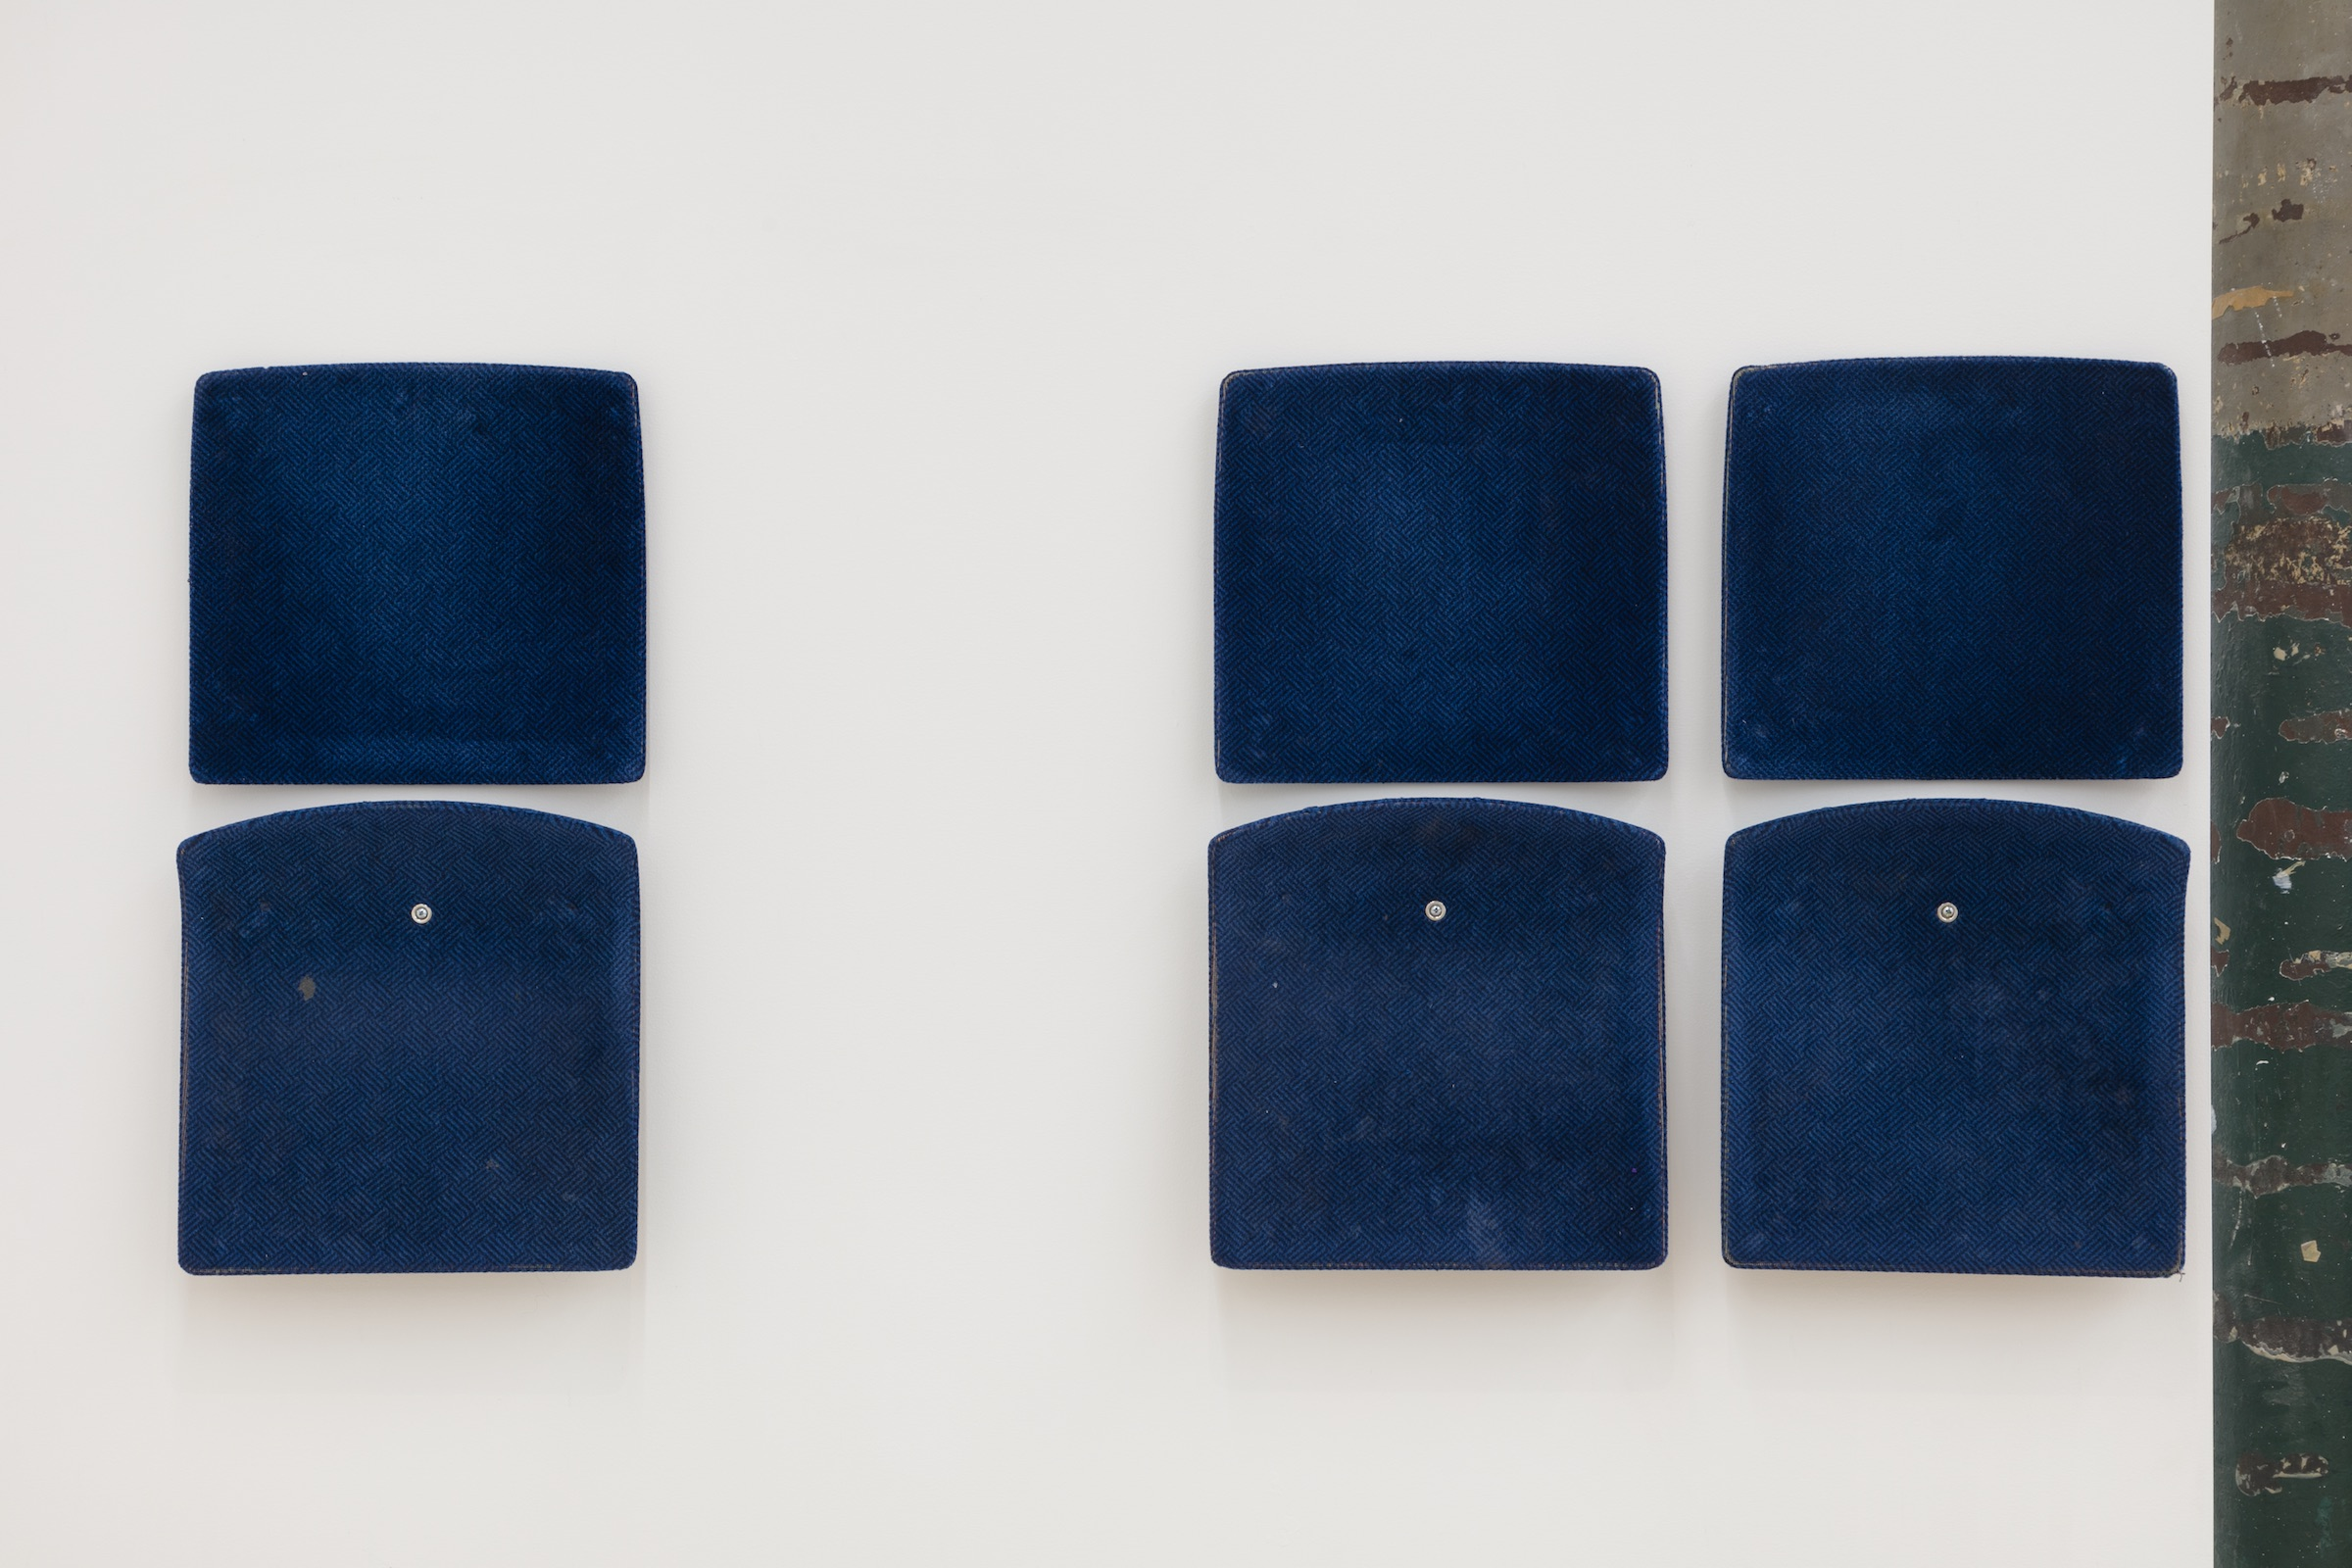 Jessica Vaughn, After Willis (rubbed, used and moved) #008  (detail), 2017, 7 individual pairs of used machine fabricated public transit train seats (Chicago Transit Authority 1998 - 2011), 284 × 32 in.